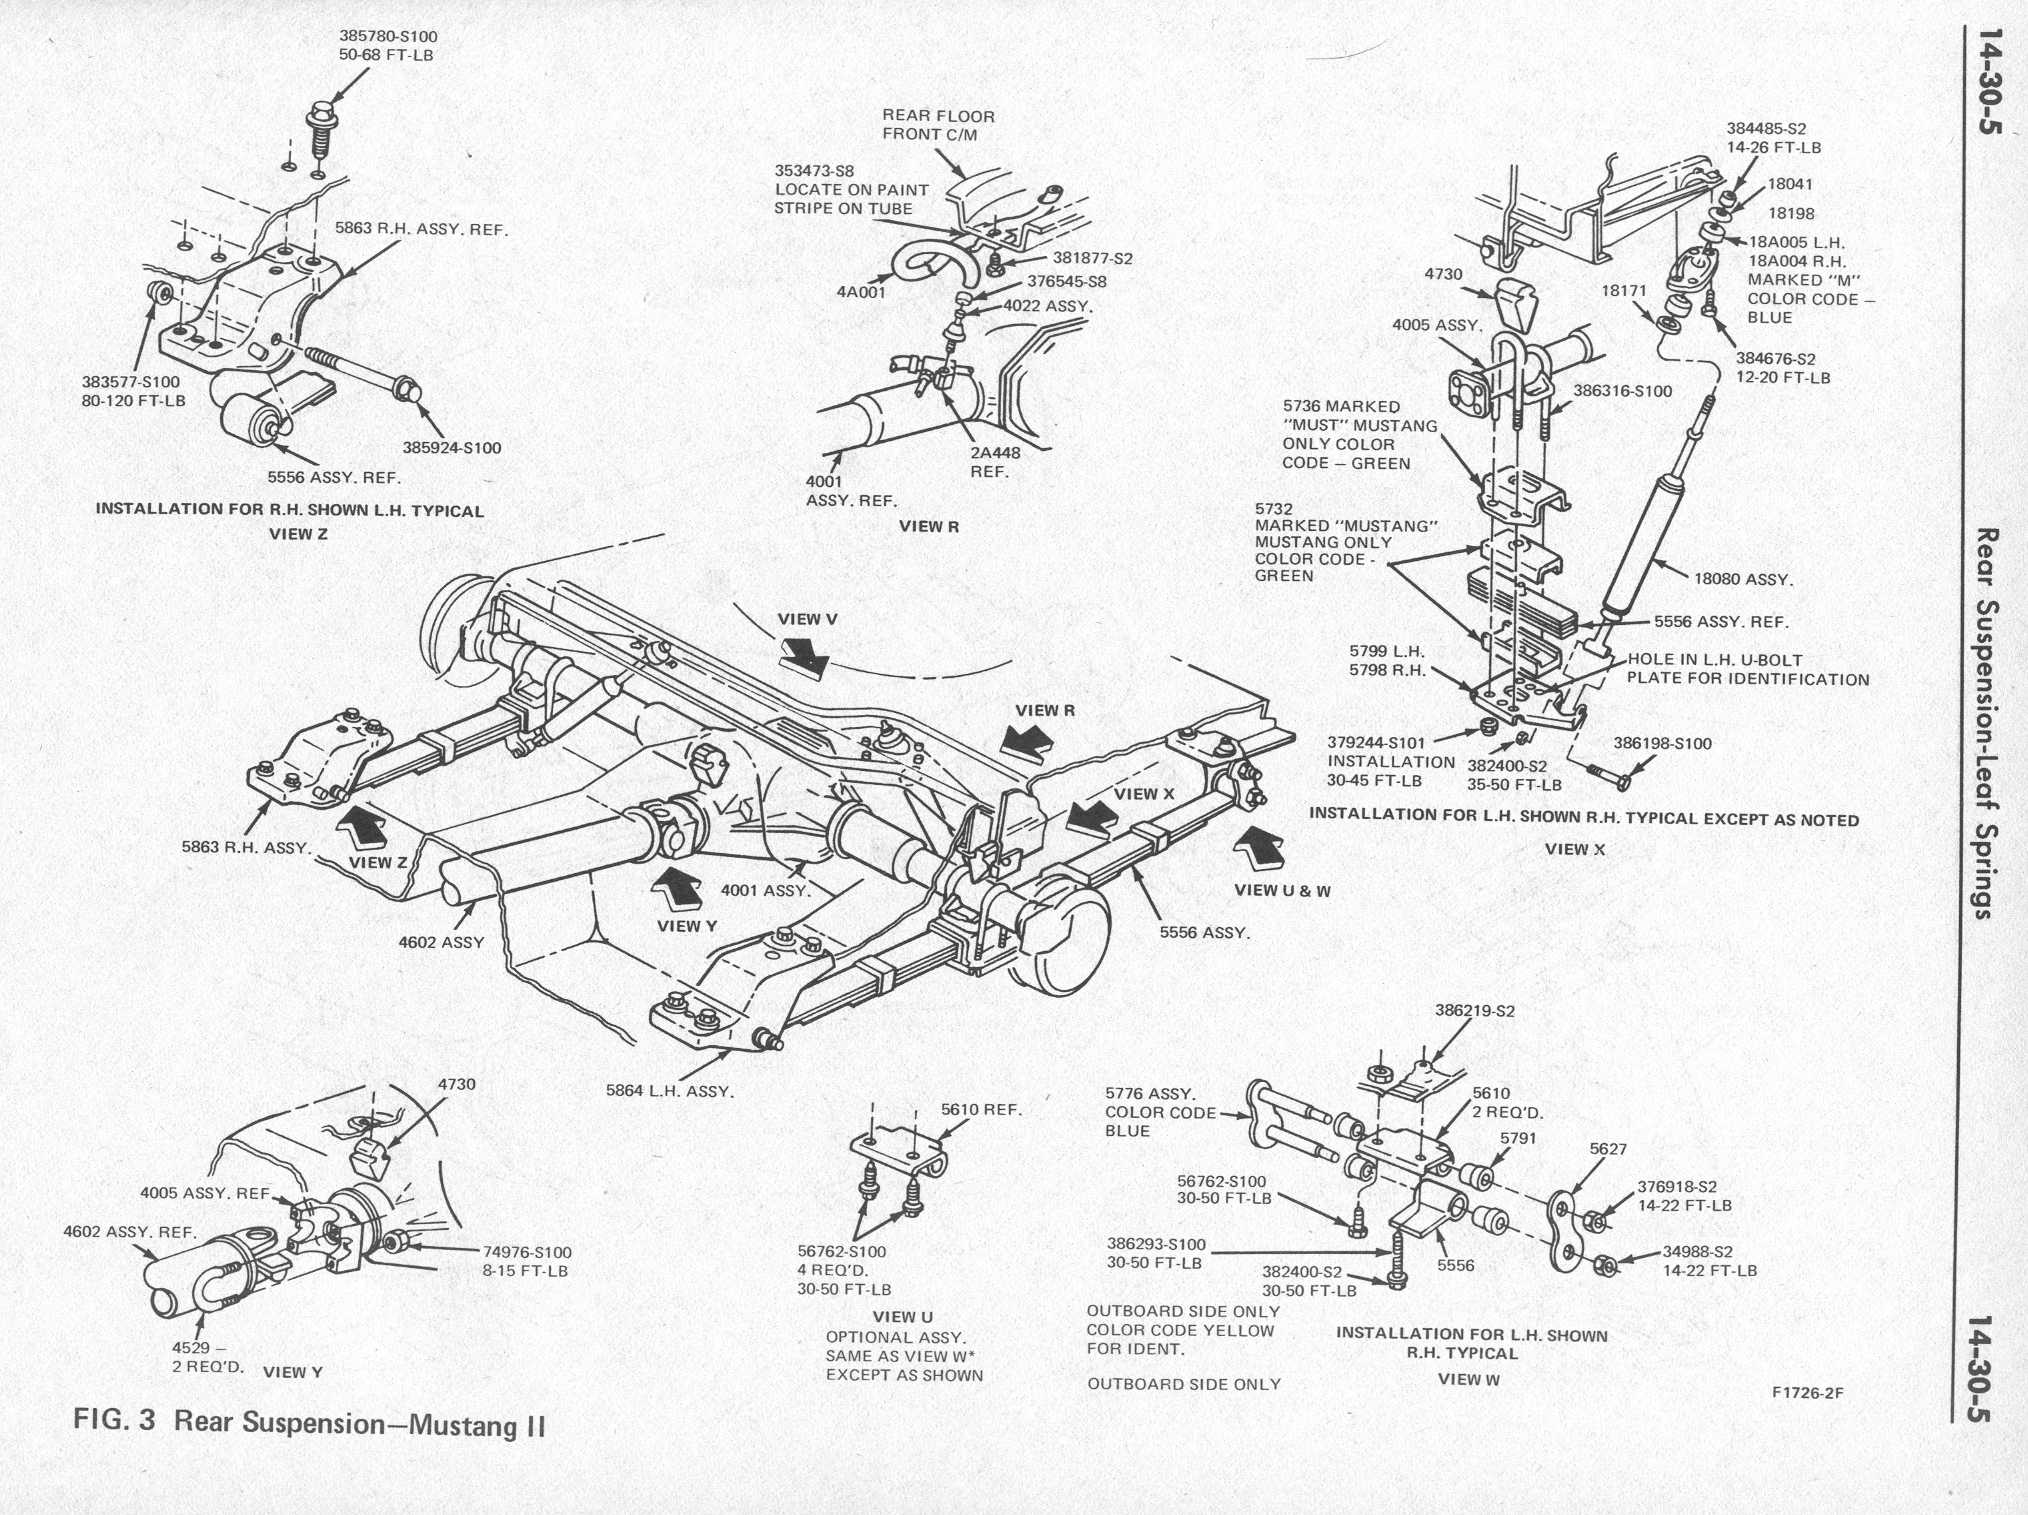 The Mustang Ii Organization 1971 Ford Bronco Wiring Diagram We Also Have A Very Large 300kb View